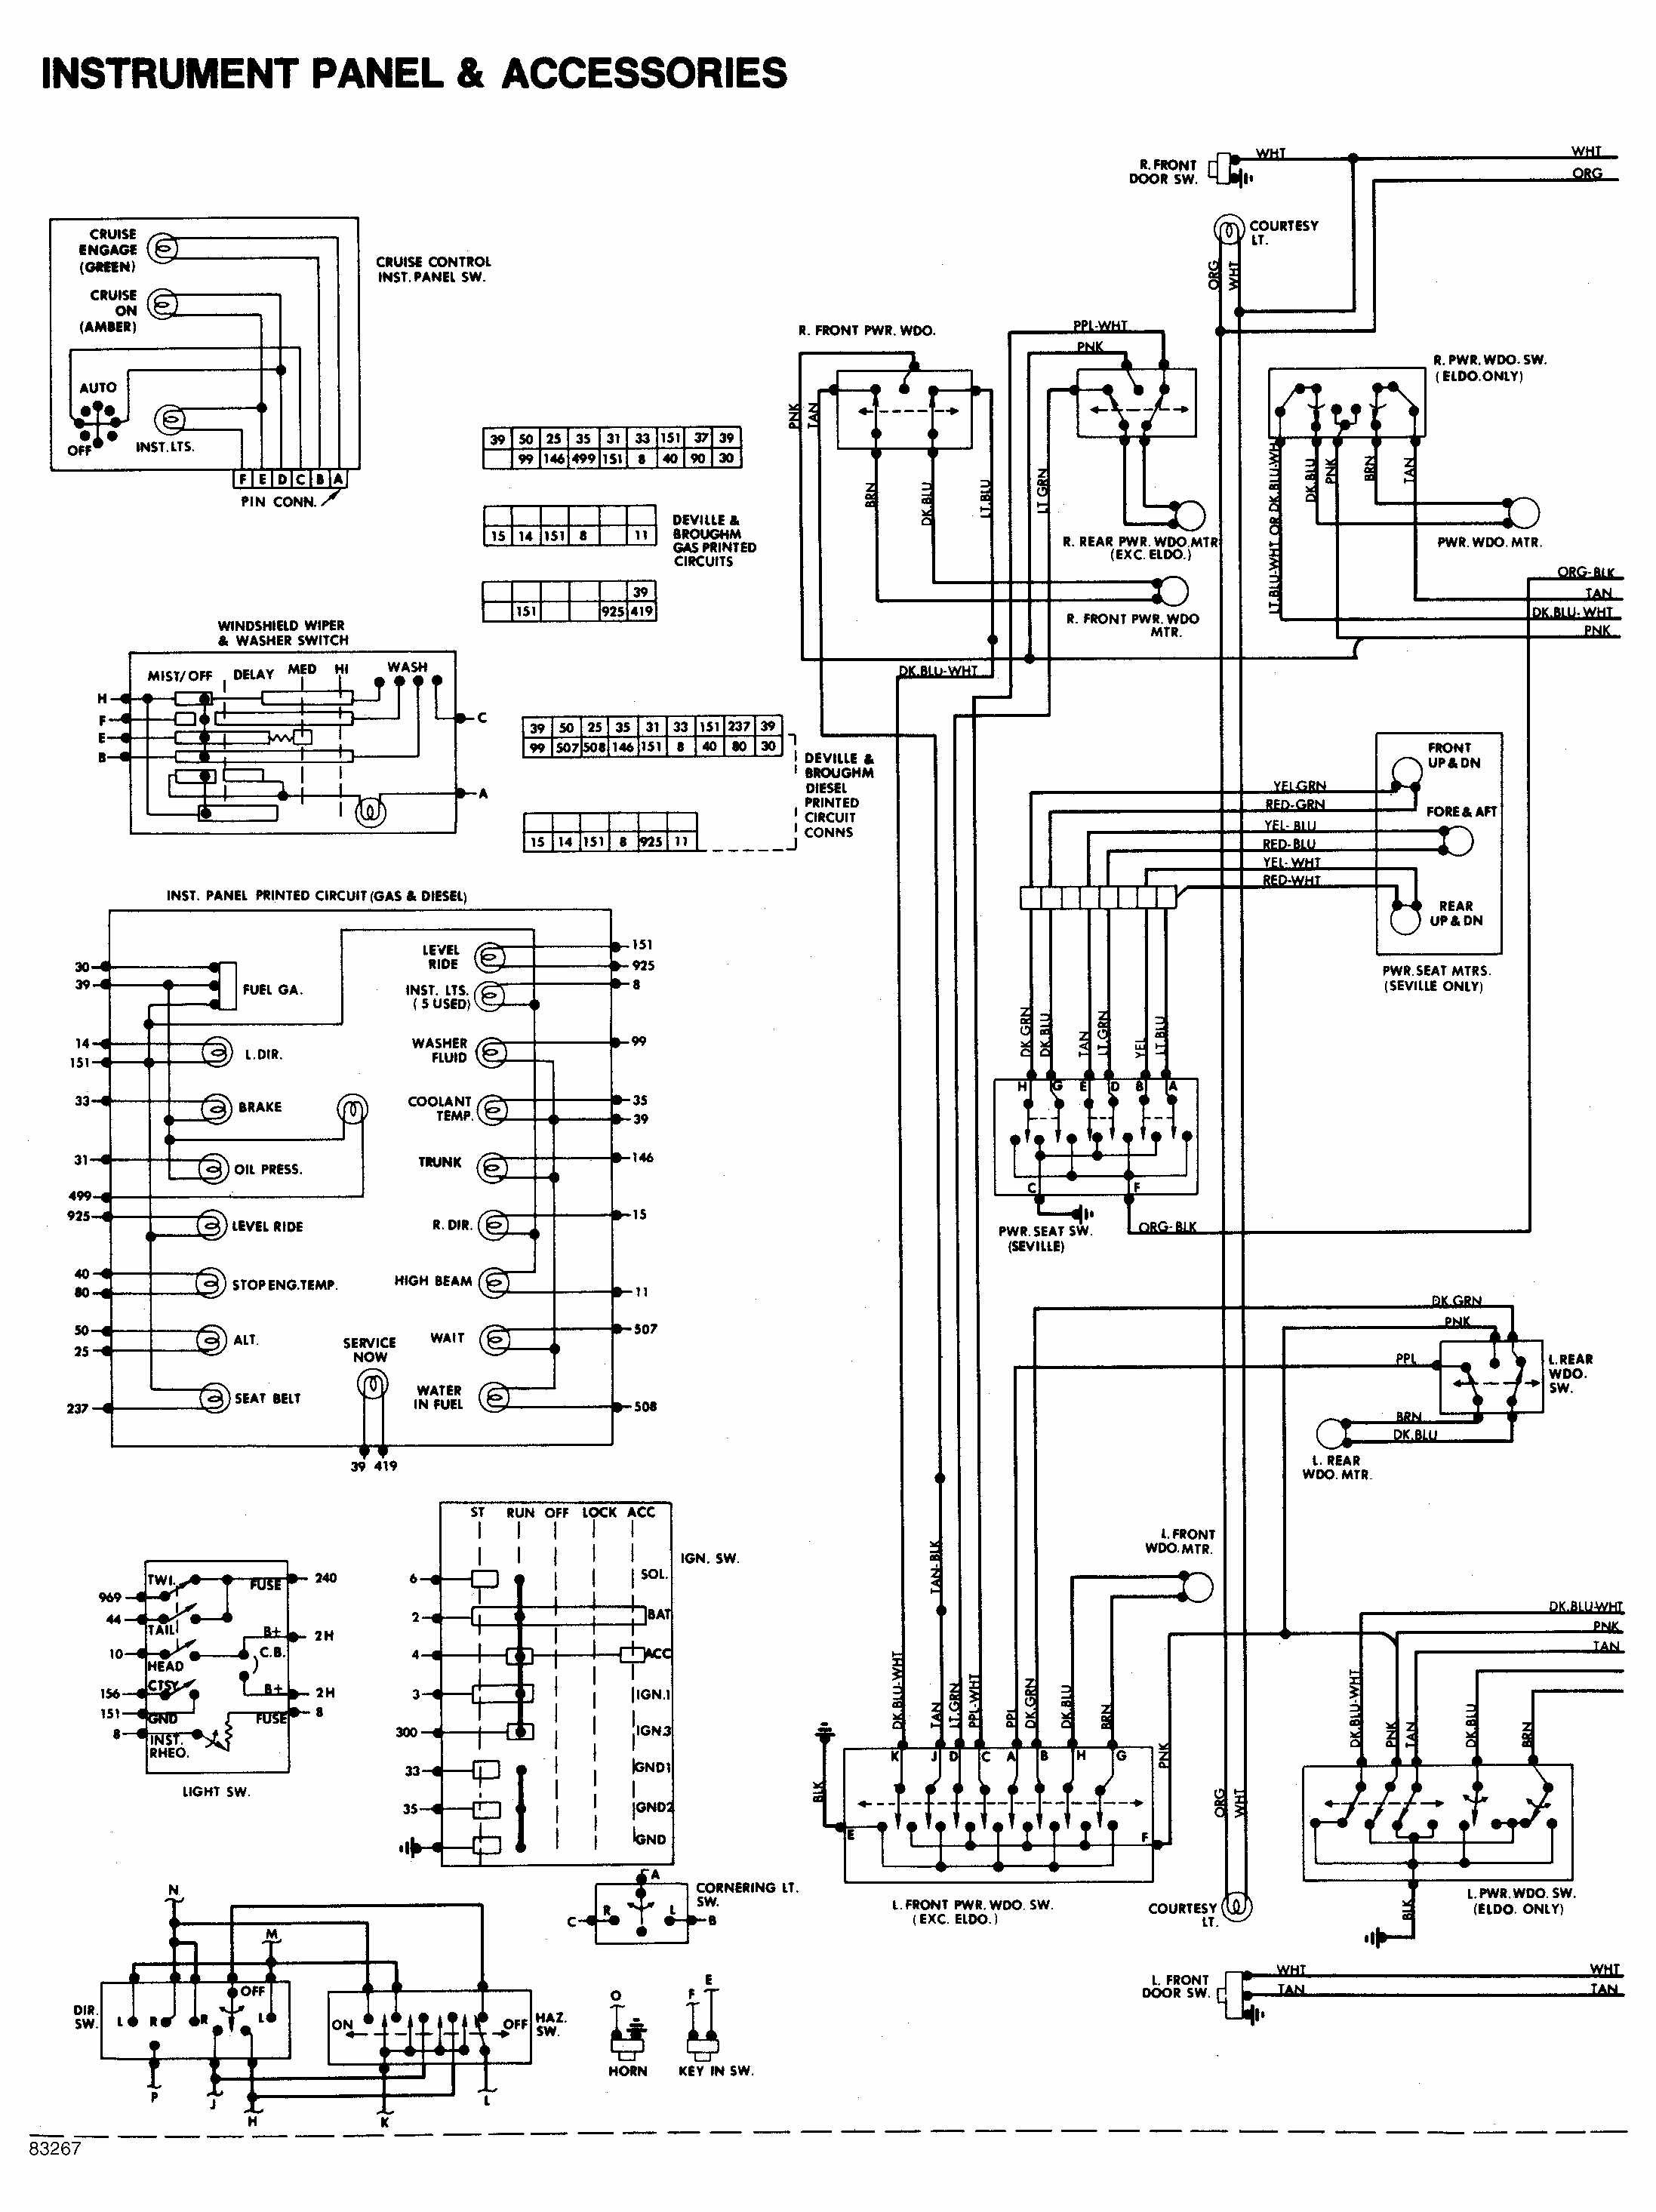 capacity yard truck wiring diagram Collection-capacity tj5000 wiring diagram 2000 wire center u2022 rh 144 202 34 195 Capacity TJ5000 Parts Manual Capacity TJ5000 Wrecked 4-k